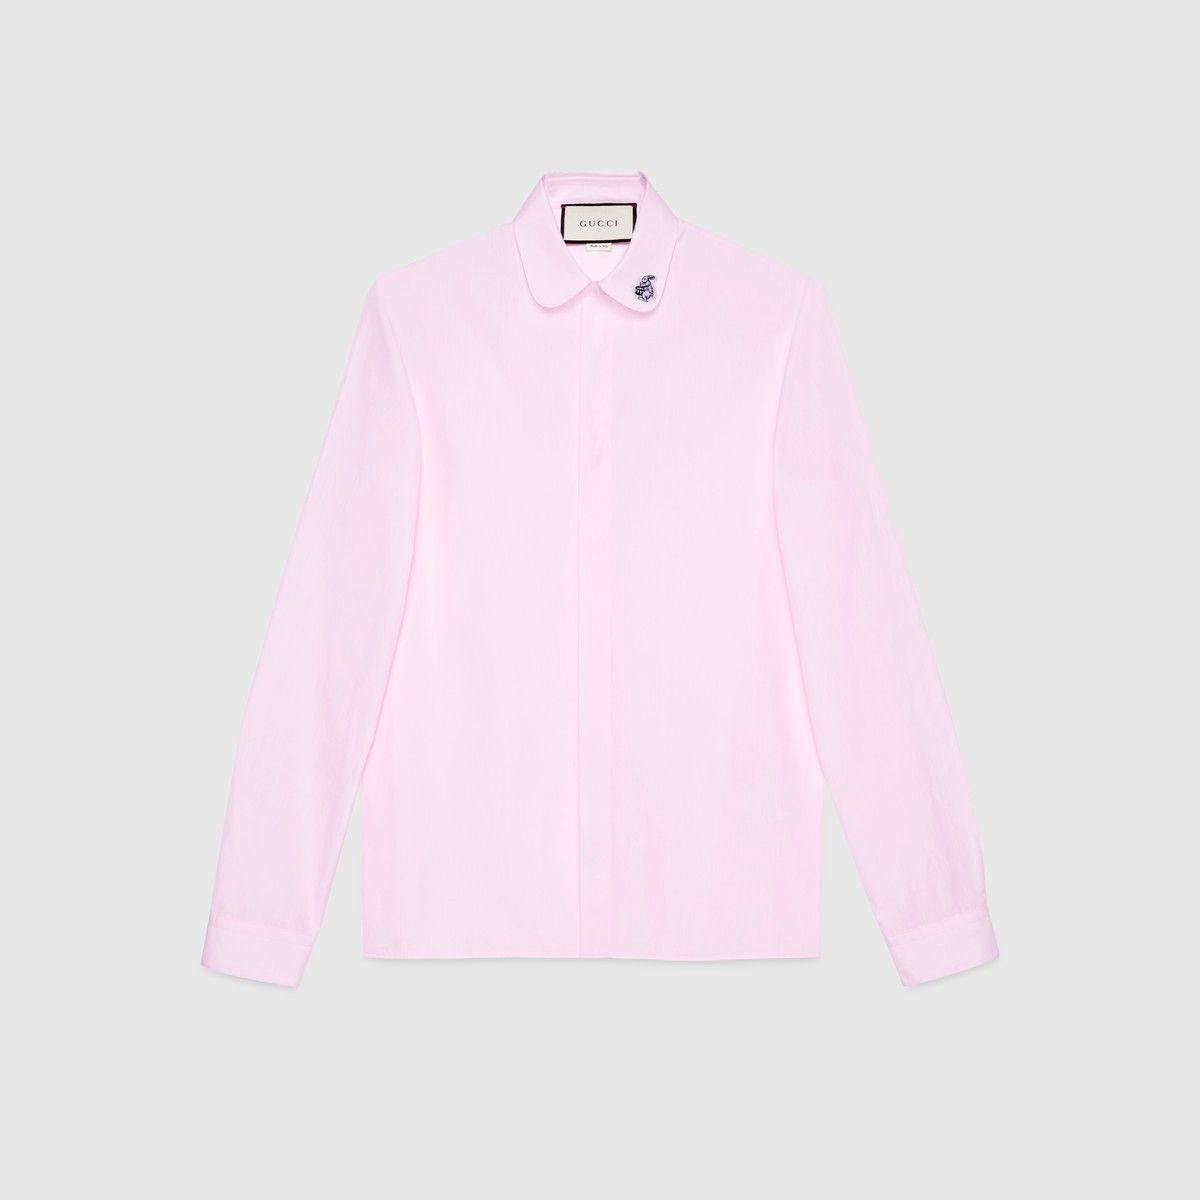 GUCCI Rabbit Embroidered Cambridge Shirt - Light Pink Cotton. #gucci ...